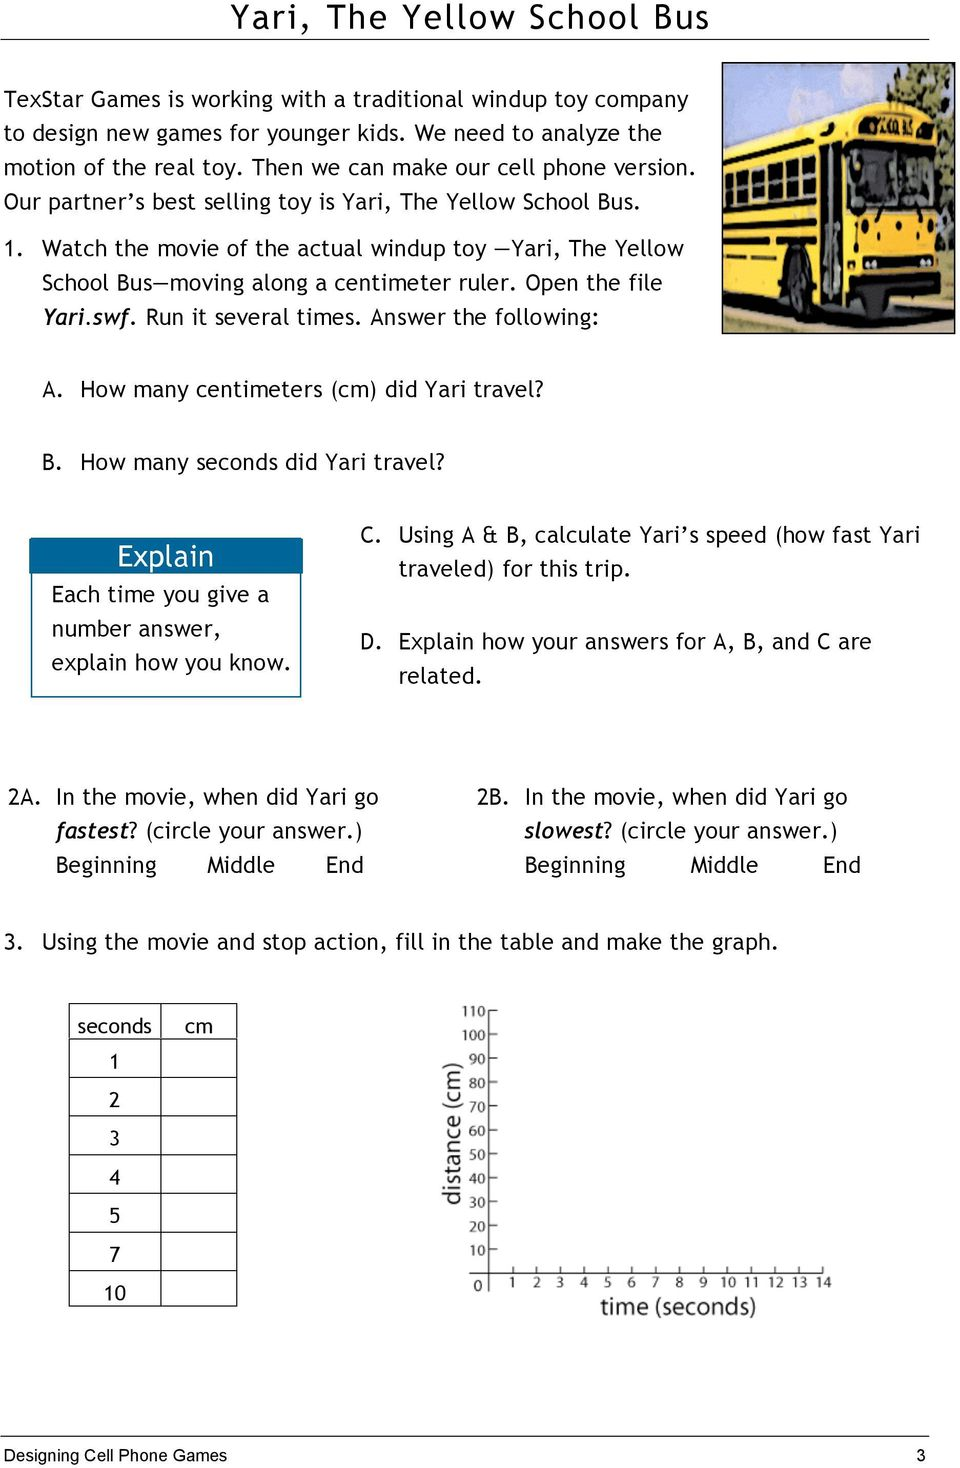 Watch the movie of the actual windup toy Yari, The Yellow School Bus moving along a centimeter ruler. Open the file Yari.swf. Run it several times. Answer the following: A.